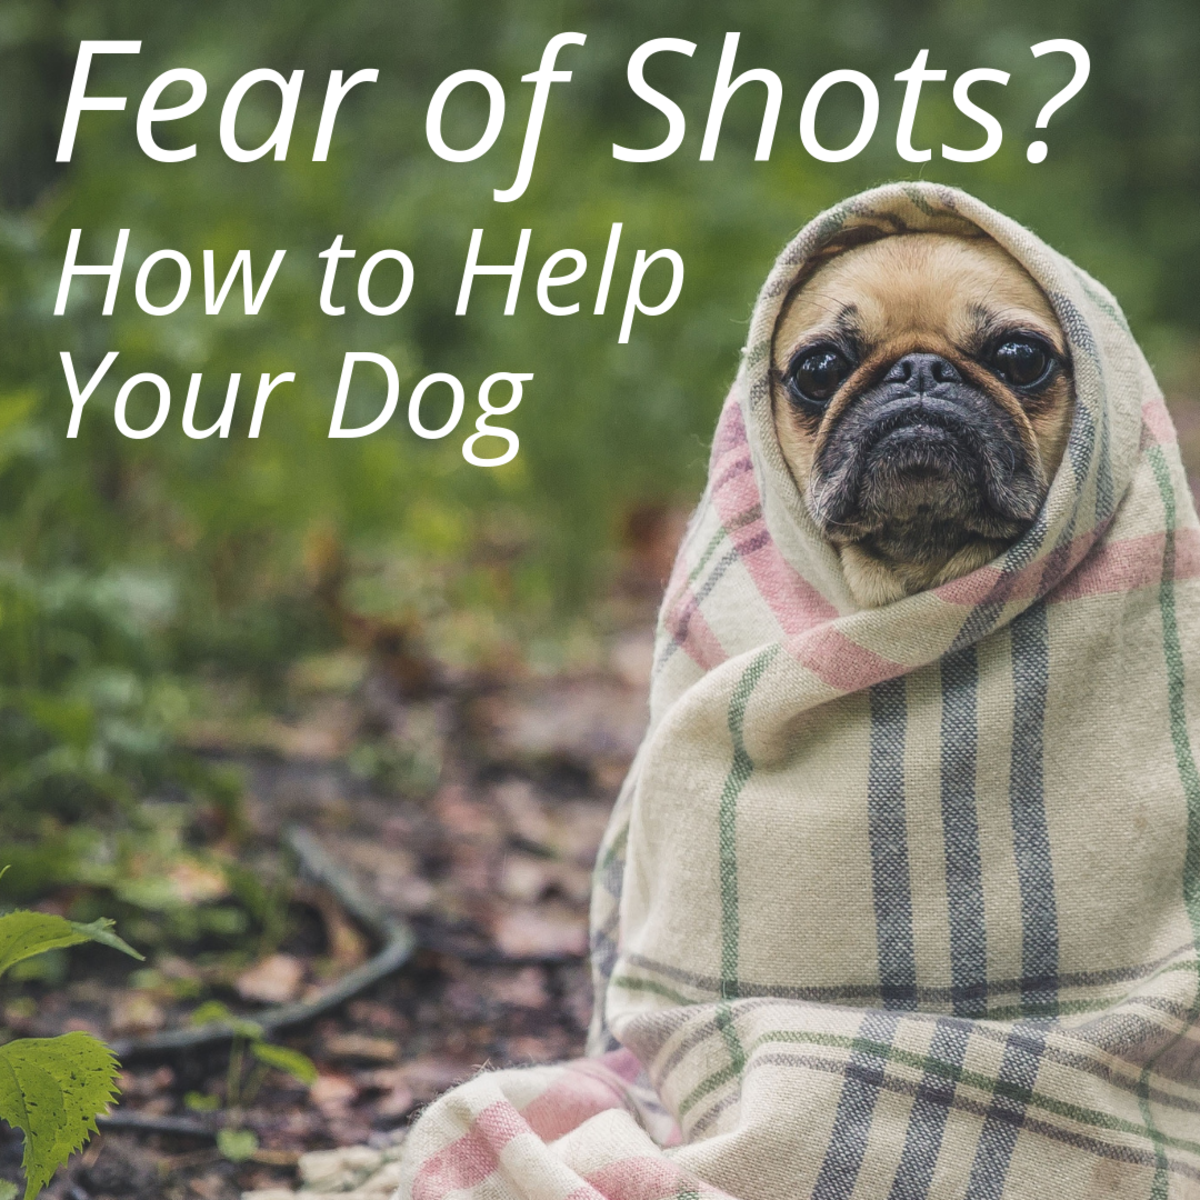 How to Make Your Dog Less Fearful of Shots